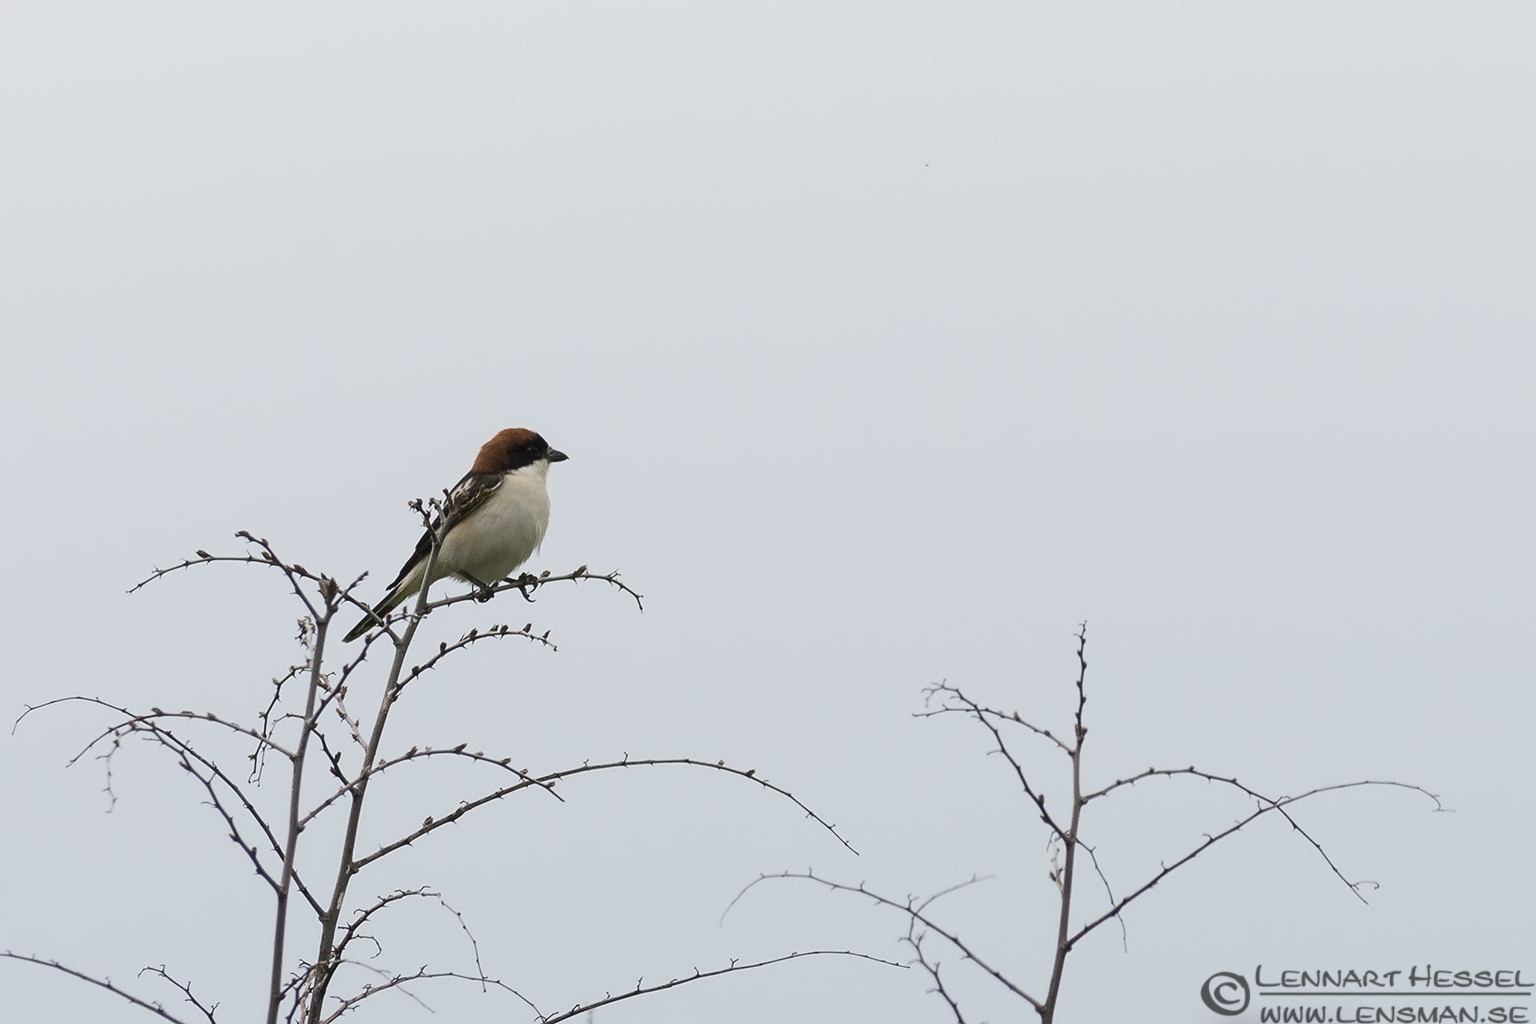 Woodchat Shrike in Bulgaria